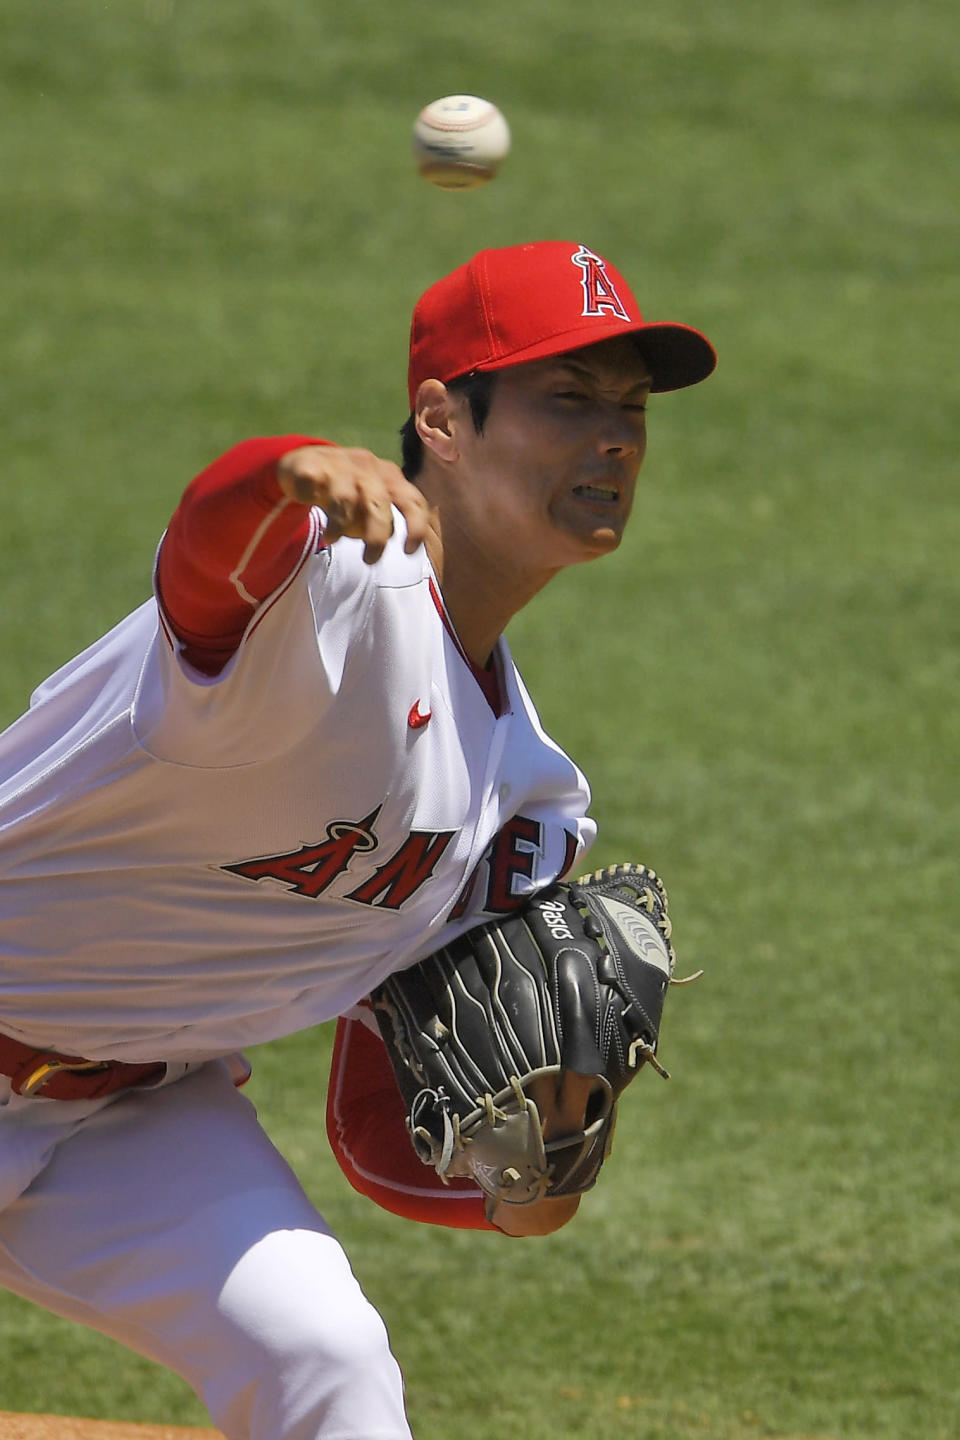 Los Angeles Angels designated hitter Shohei Ohtani, of Japan, throws to the plate during the first inning of a baseball game against the Houston Astros Sunday, Aug. 2, 2020, in Anaheim, Calif. (AP Photo/Mark J. Terrill)